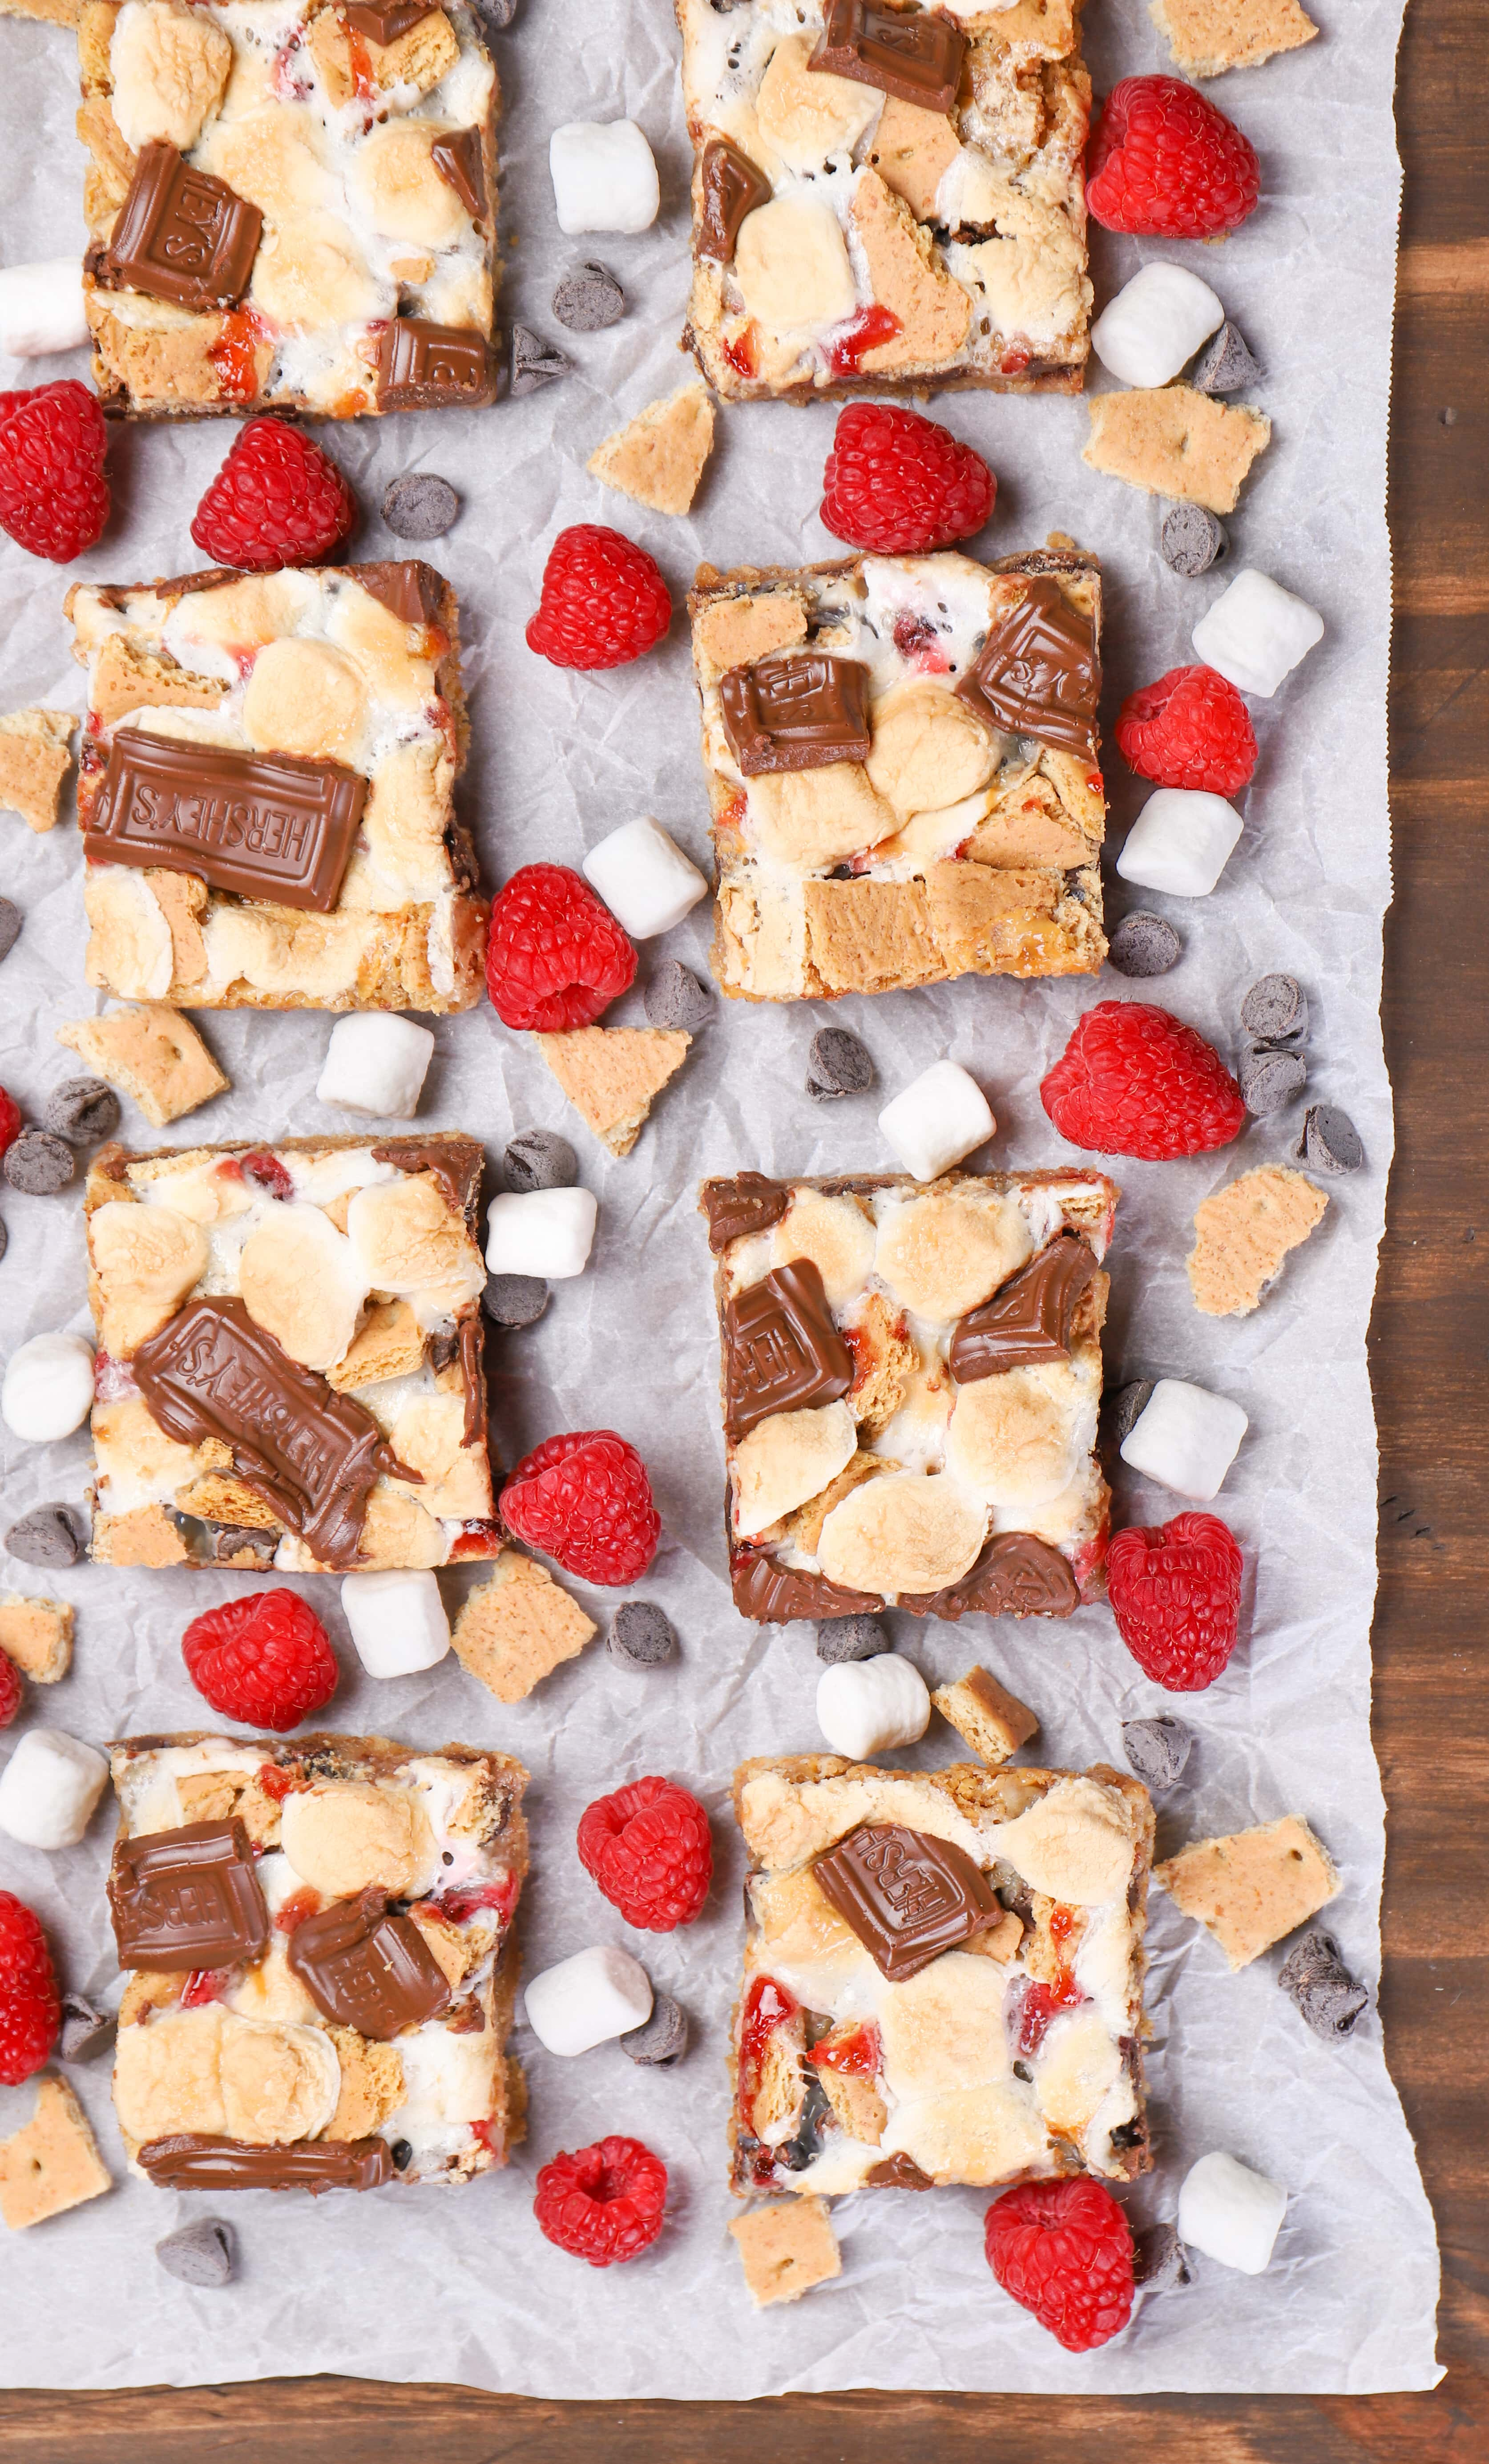 Raspberry Smores Seven Layer Bars Recipe